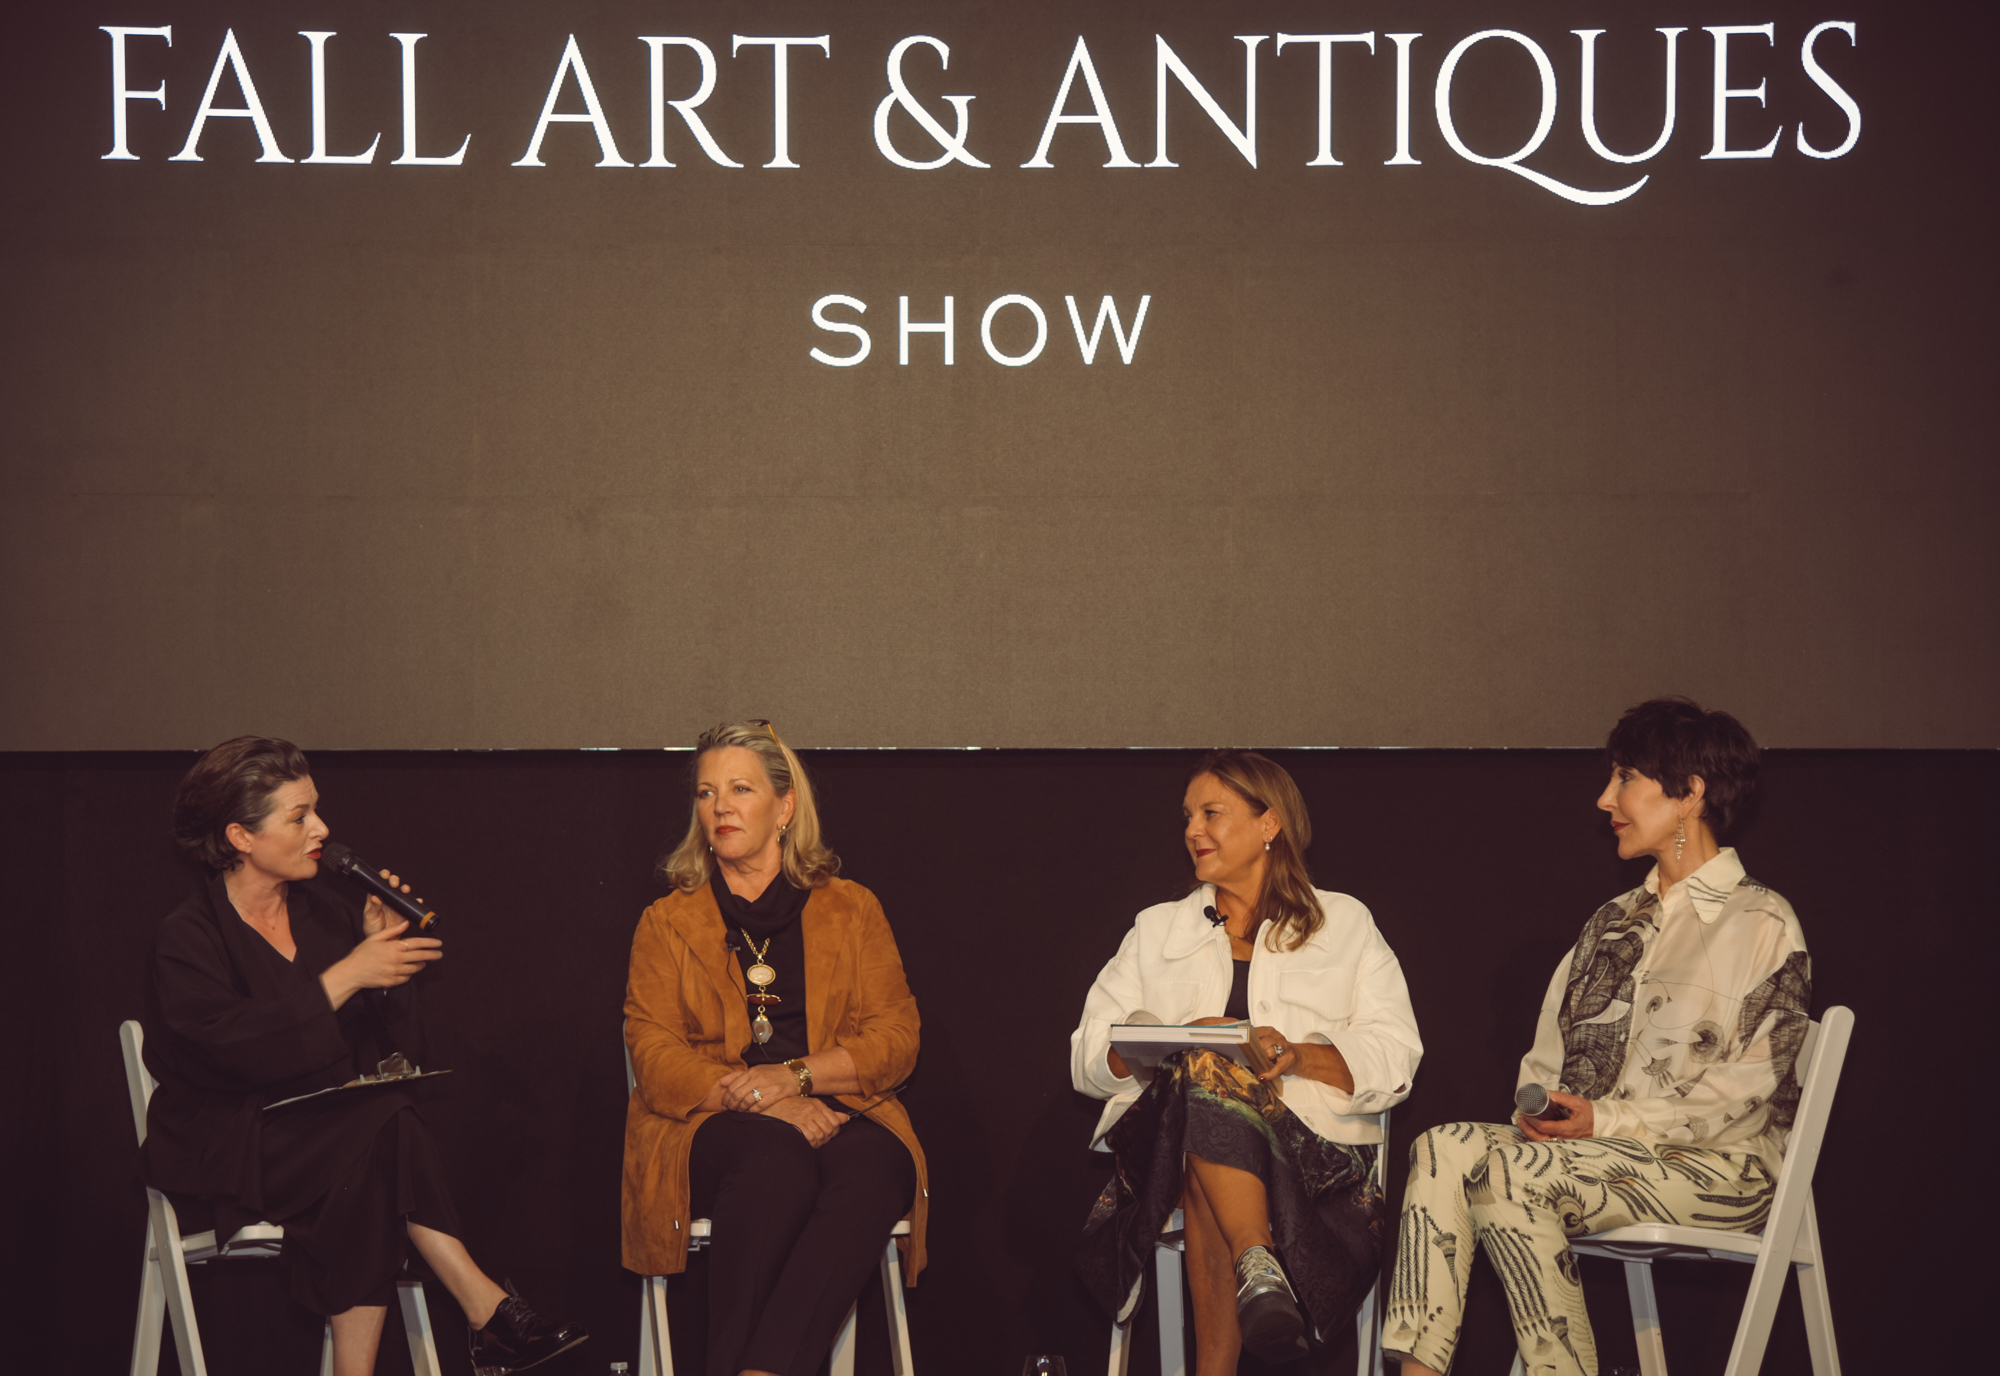 The Director of The San Francisco Fall Art & Antiques Show, Ariane Trimuschat, introduced the esteemed panelists.